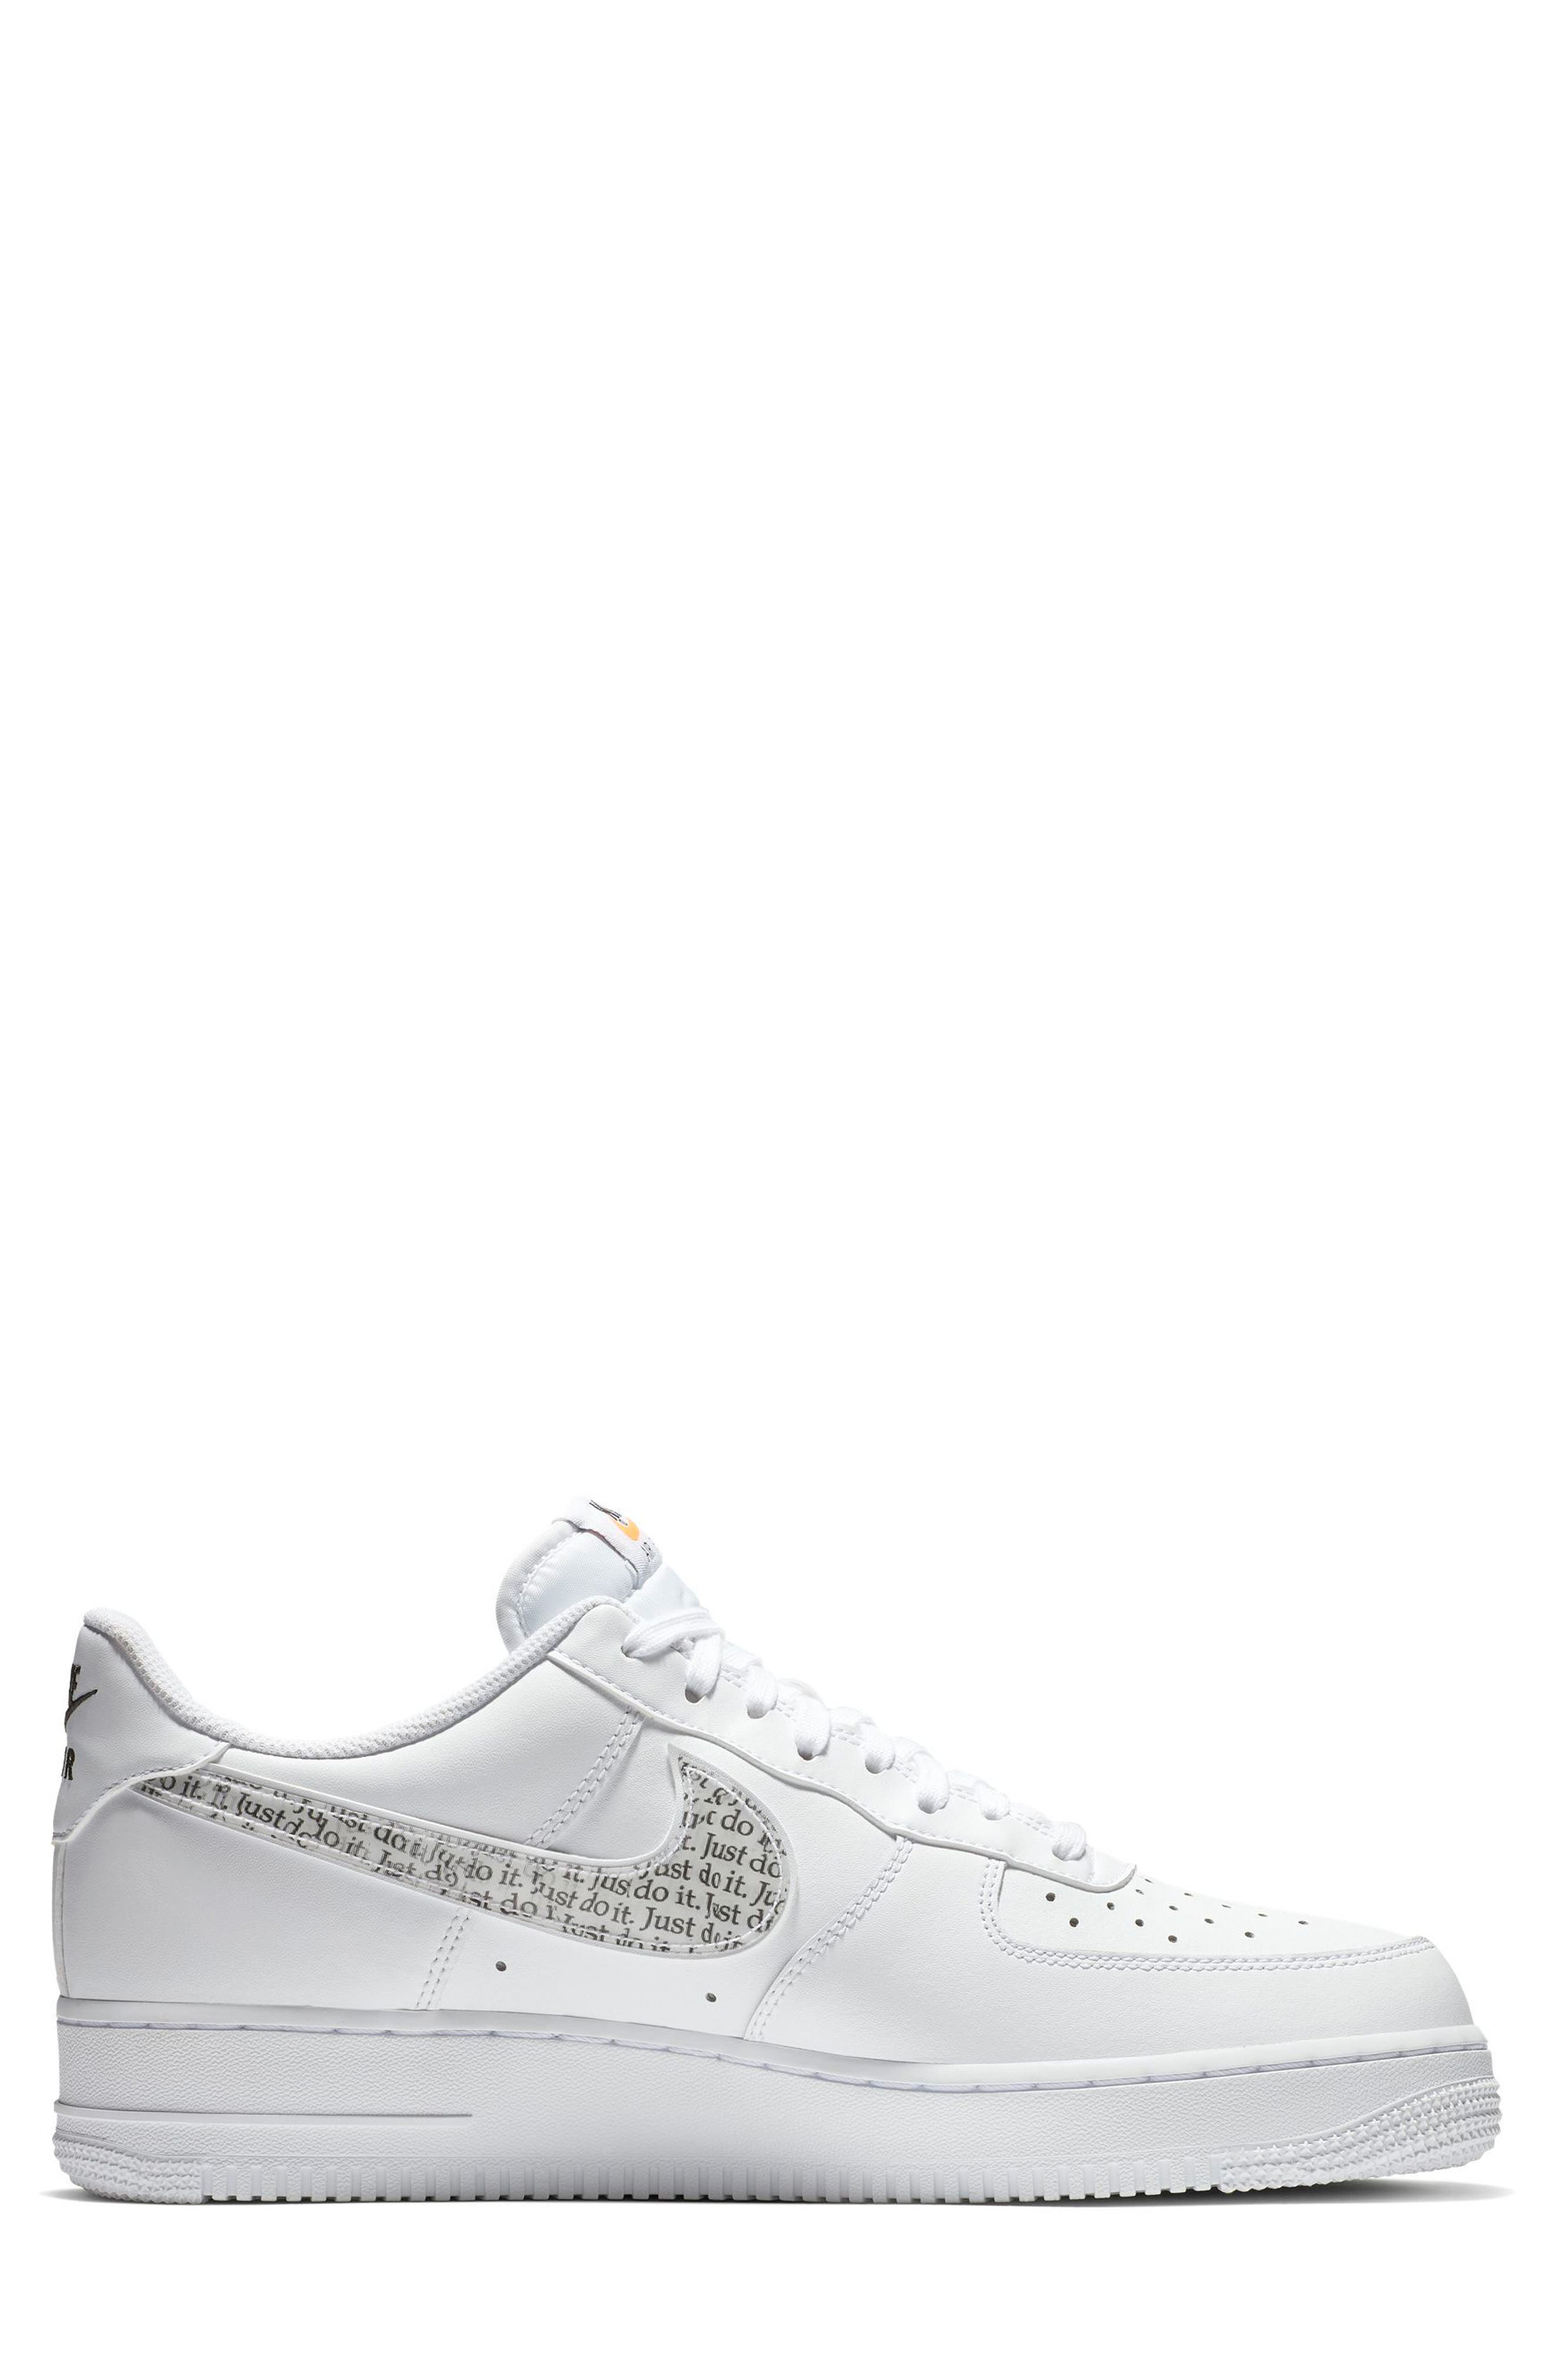 Air Force 1 '07 LV8 Just Do It Sneaker,                             Alternate thumbnail 2, color,                             100